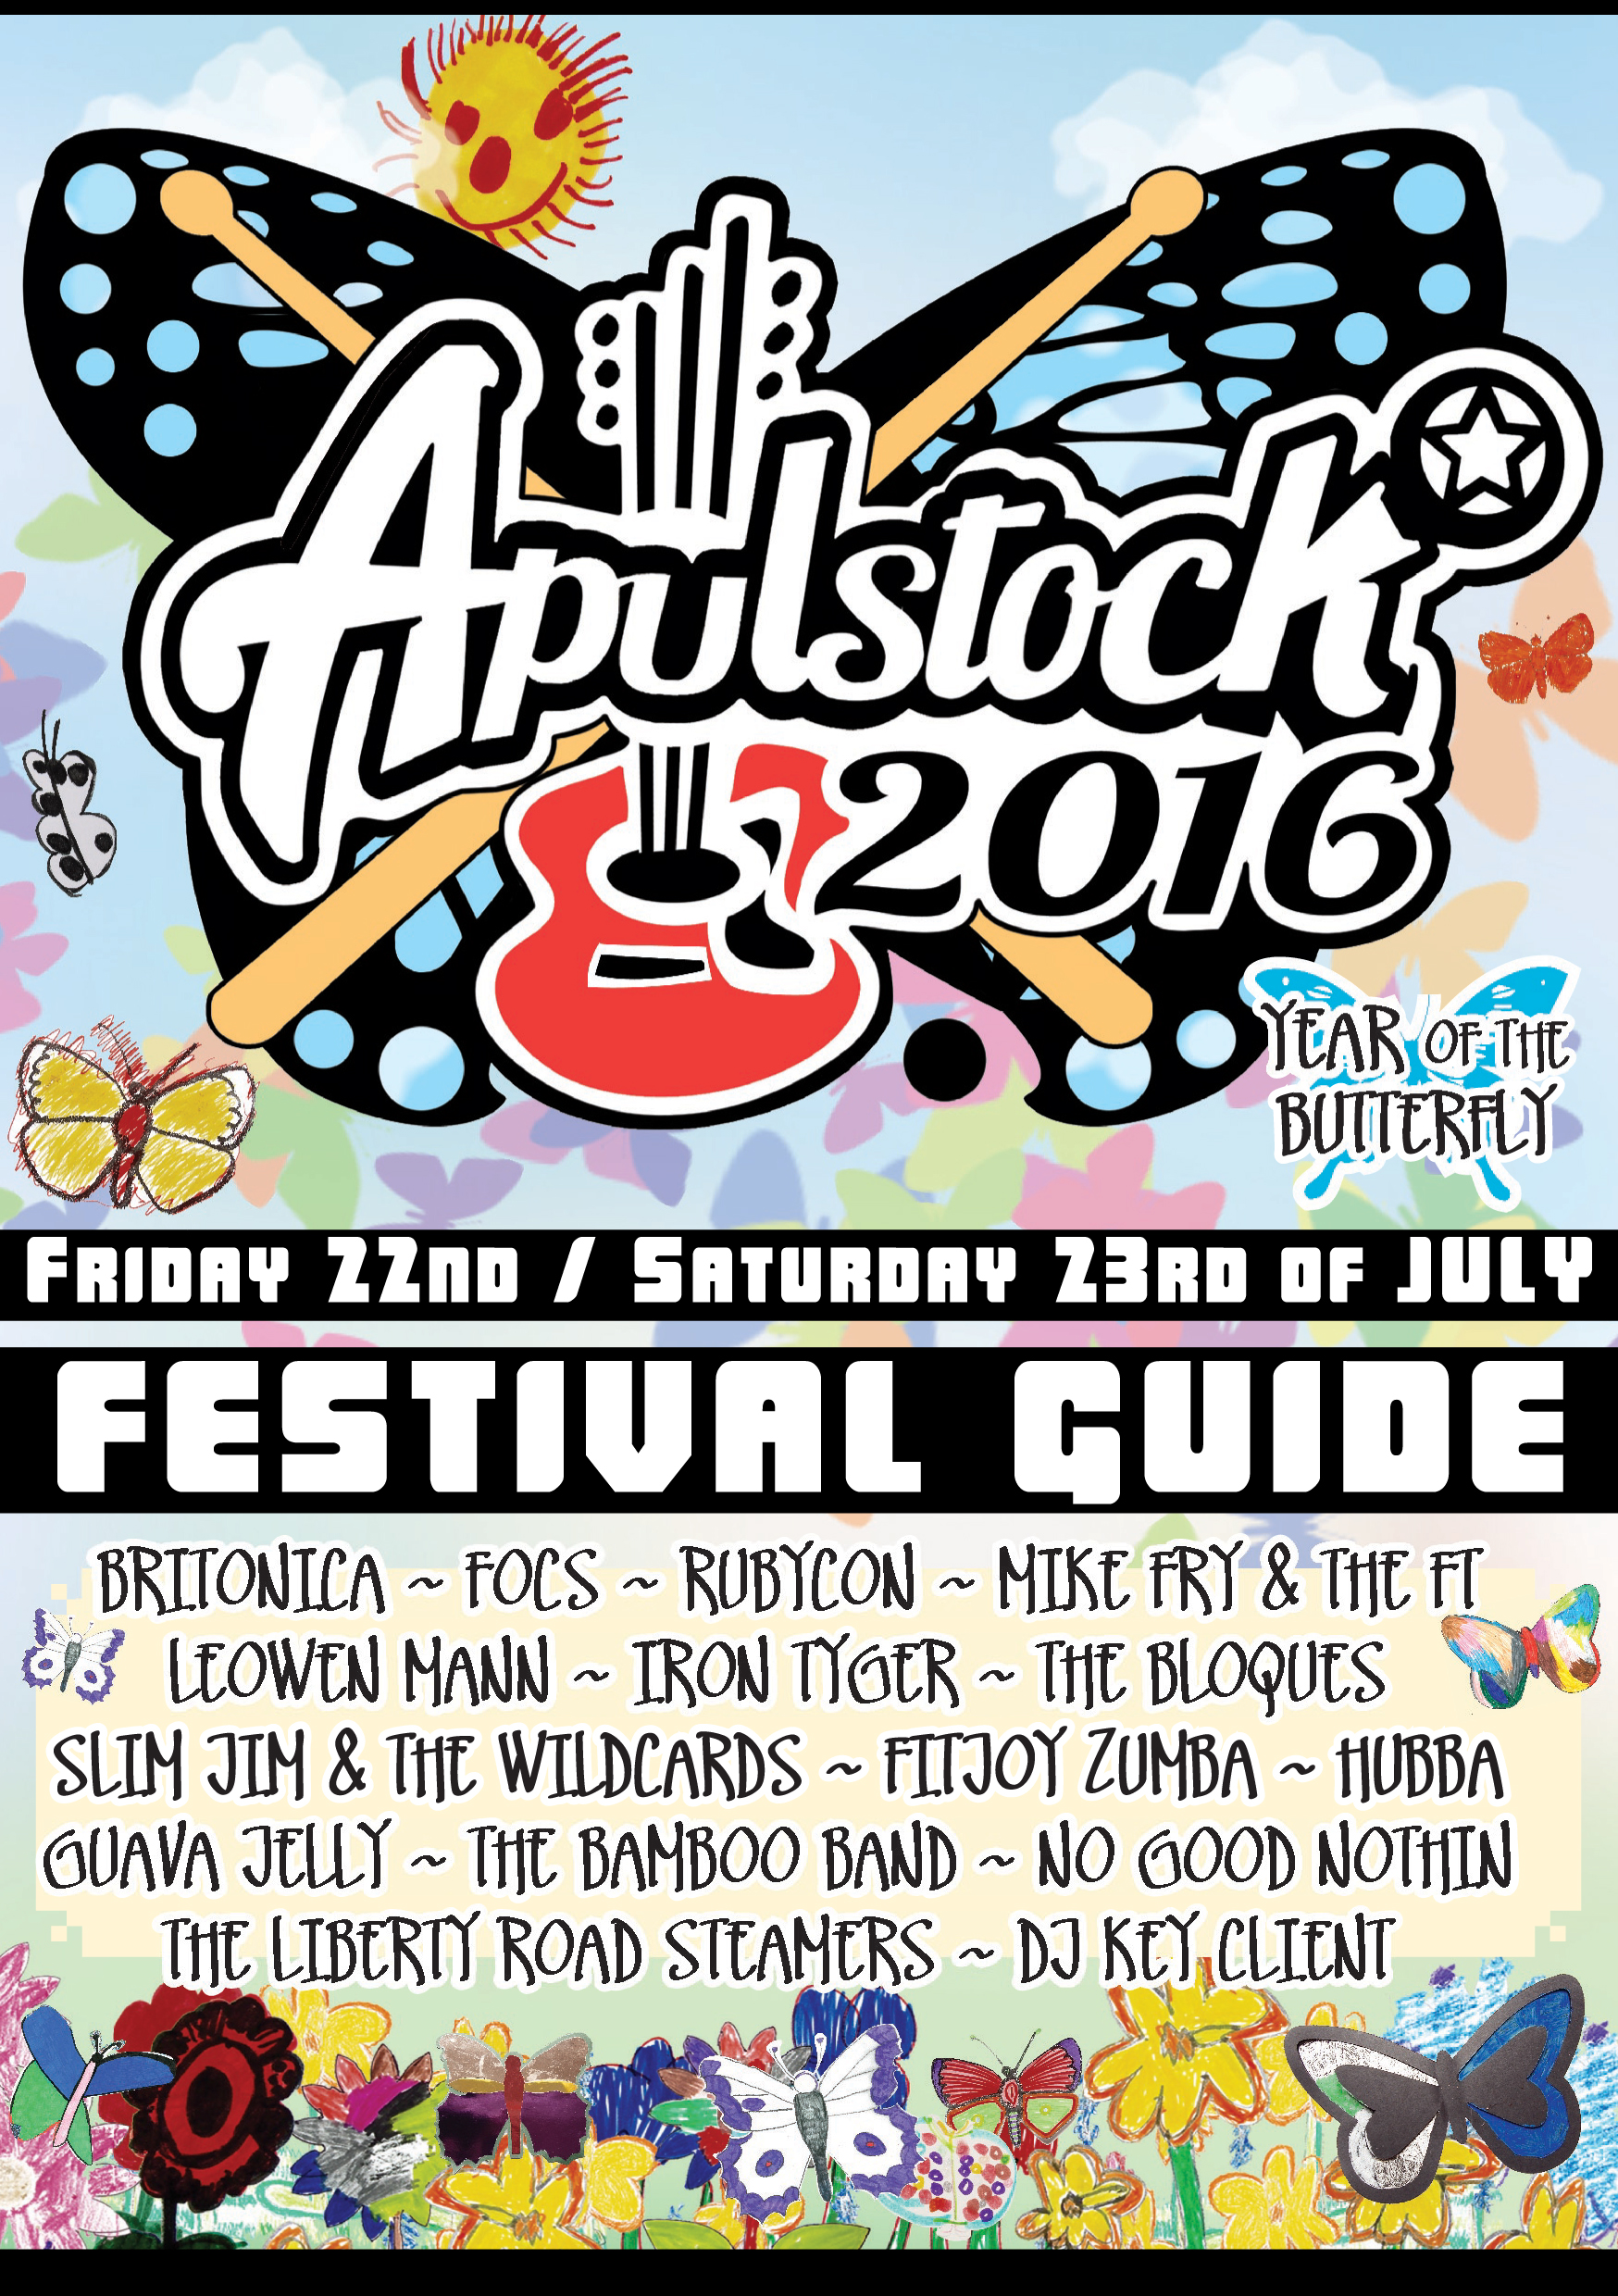 Apulstock 2016 Event Guide 1